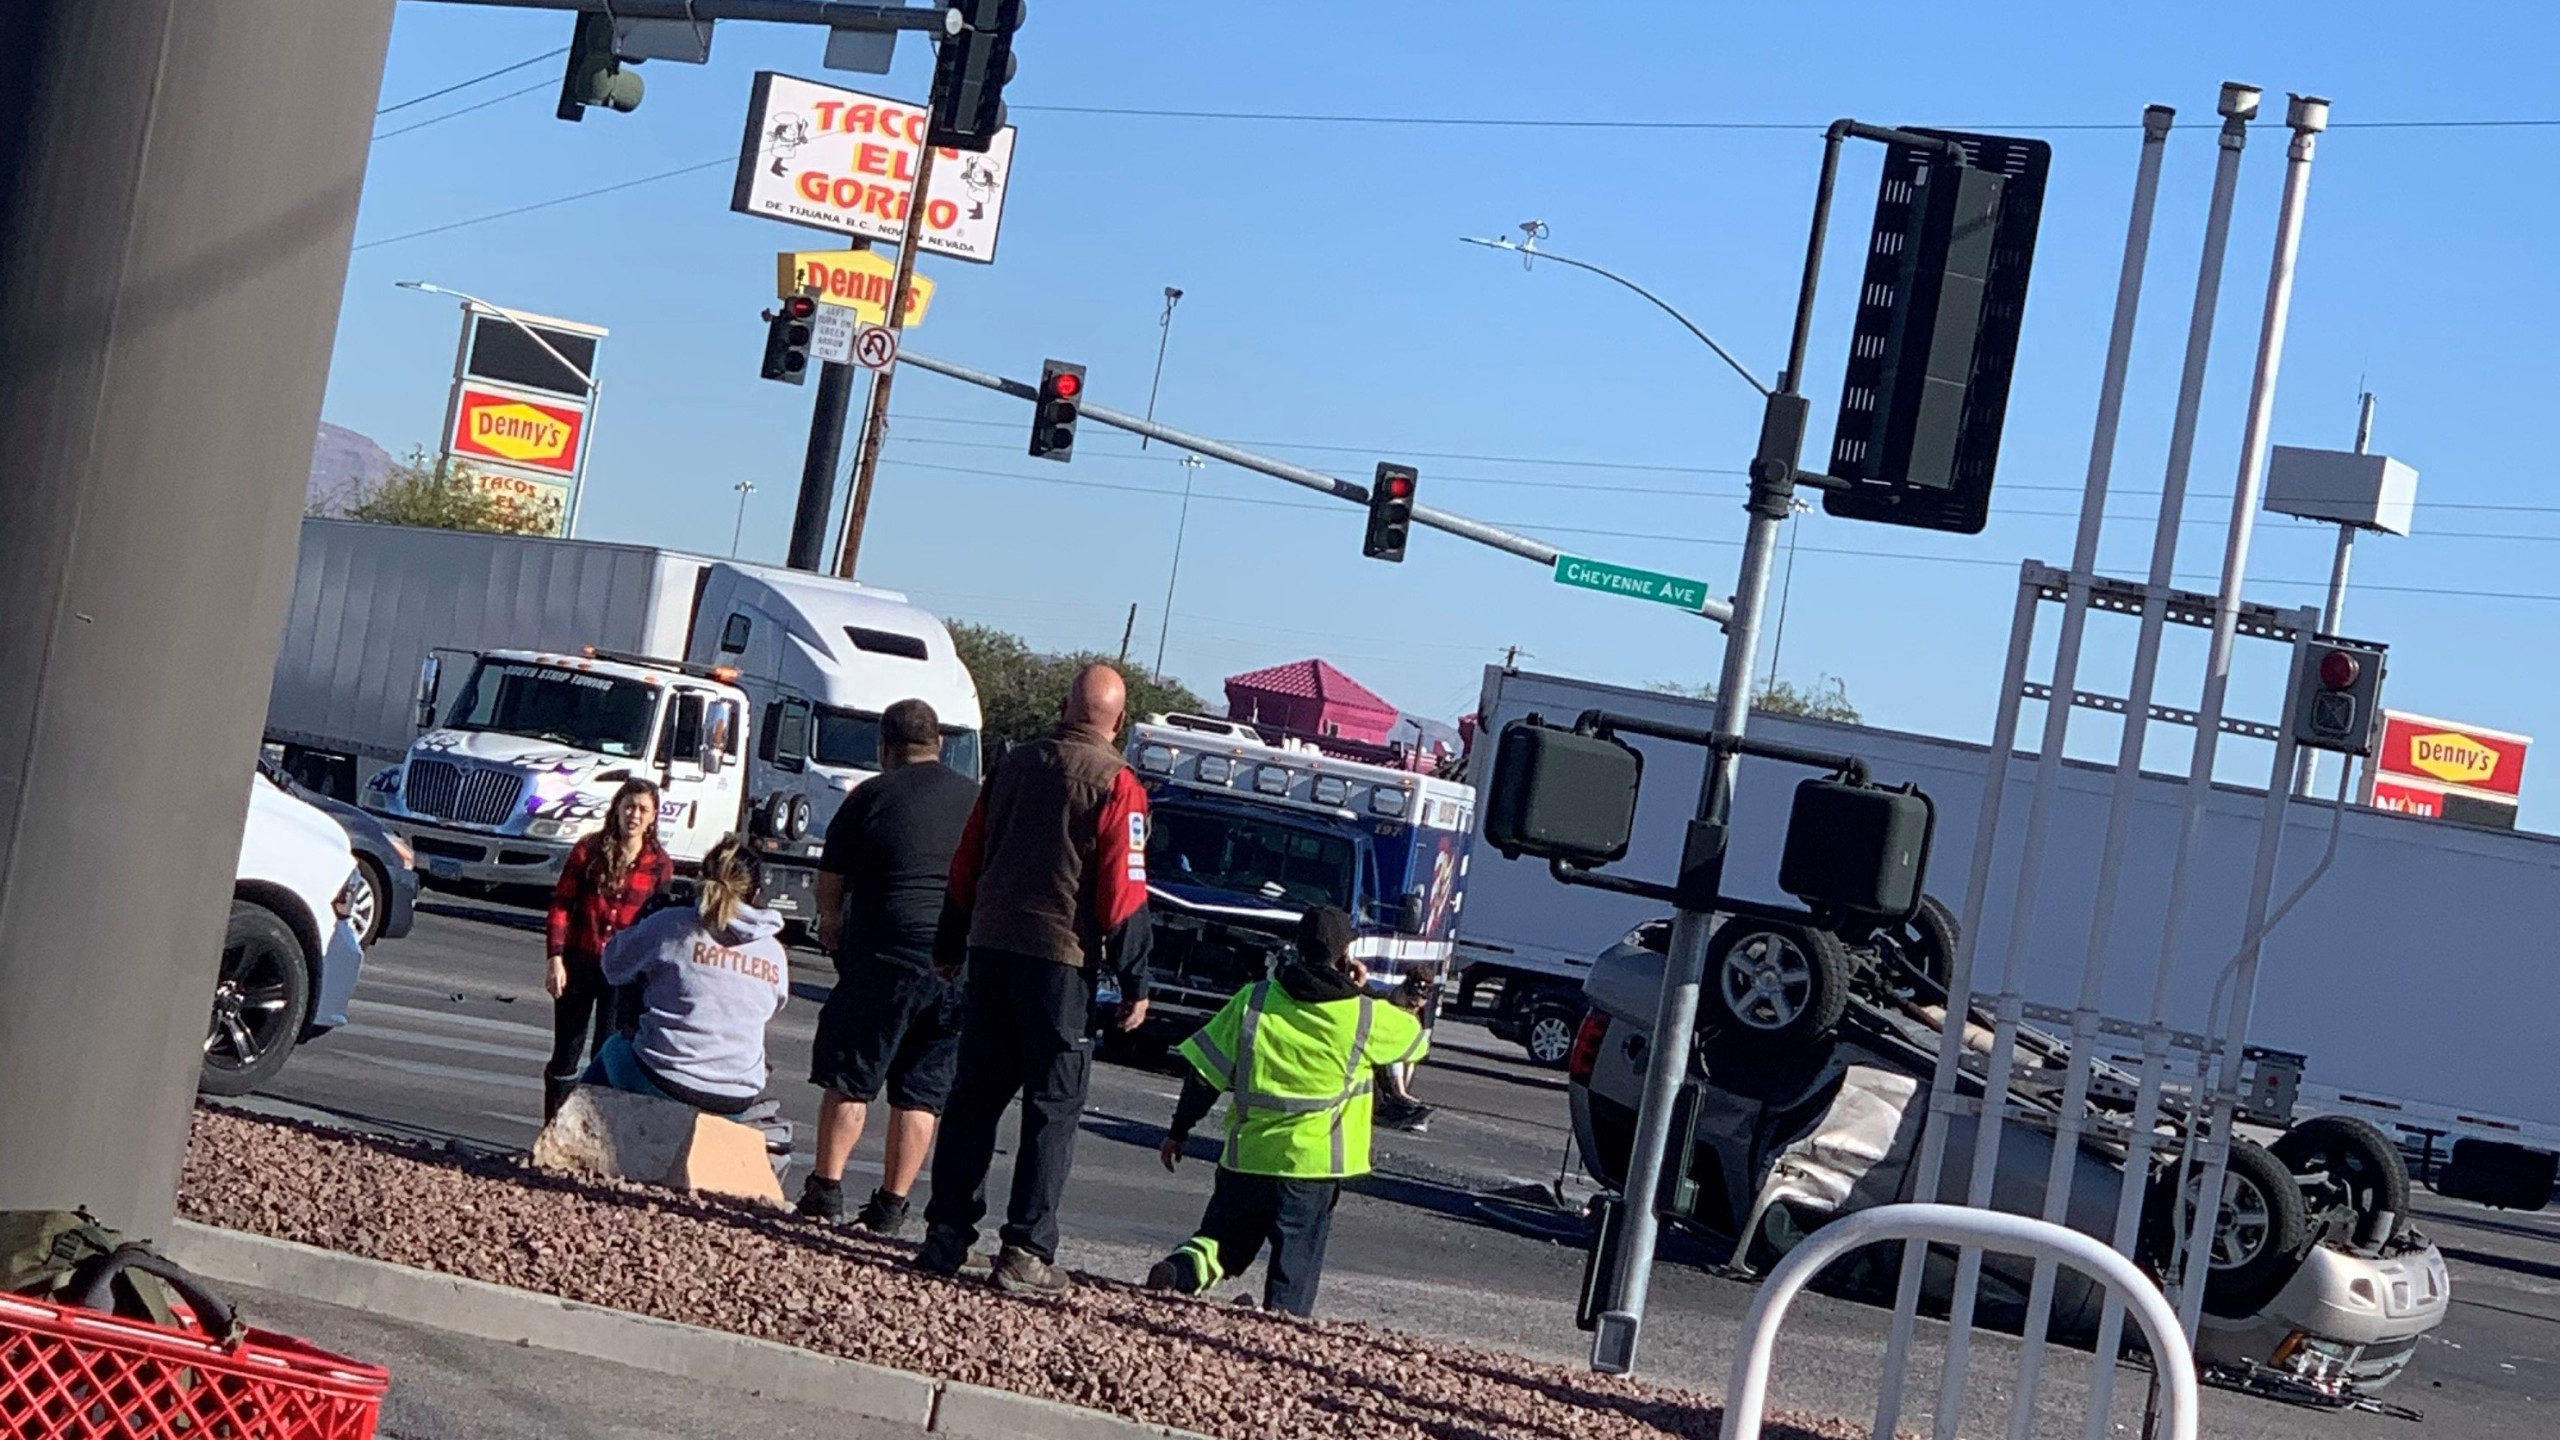 Ambulance and SUV crash in North Las Vegas; no serious injuries reported